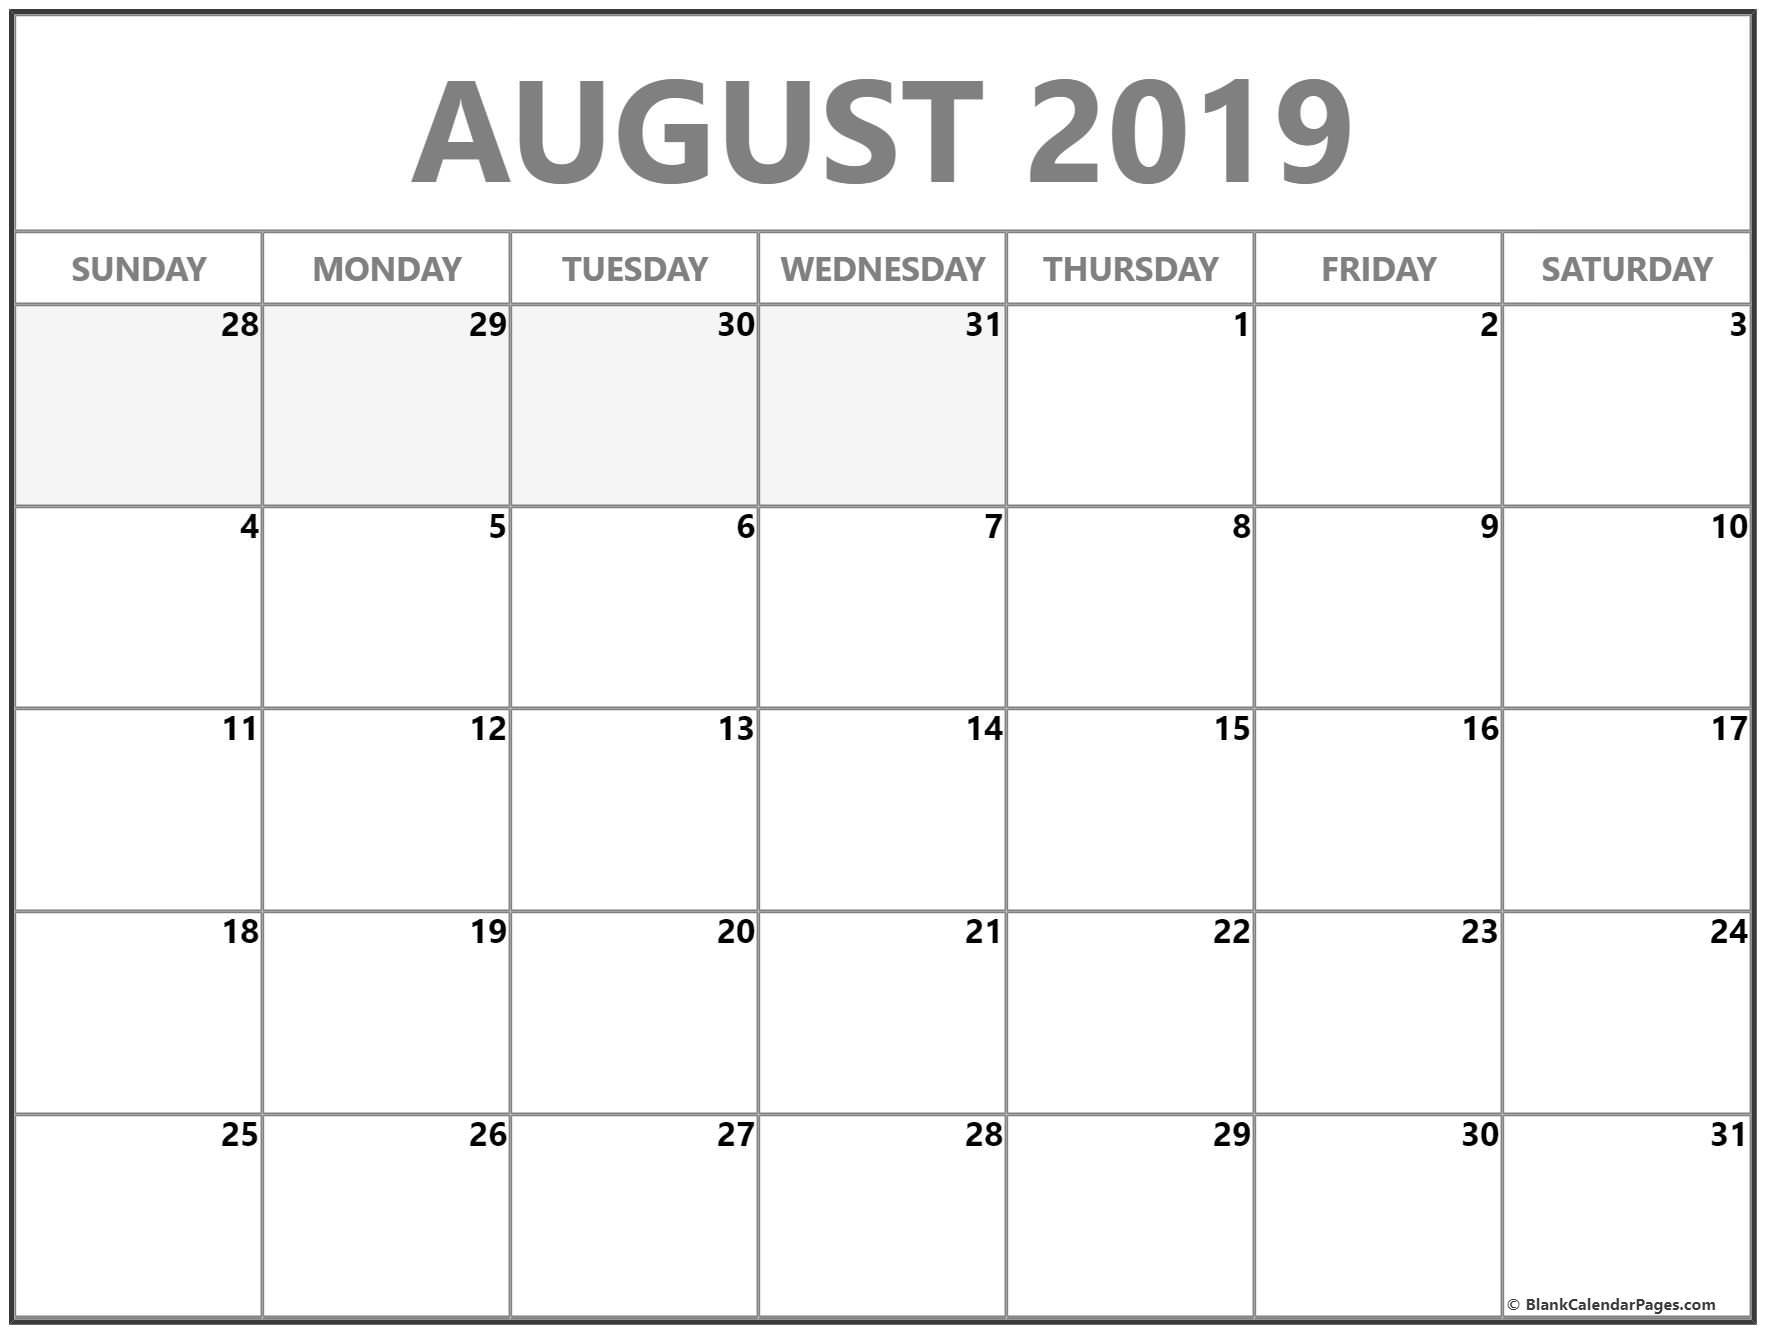 August 2019 Calendar | Free Printable Monthly Calendars for August Fun Calendar Template